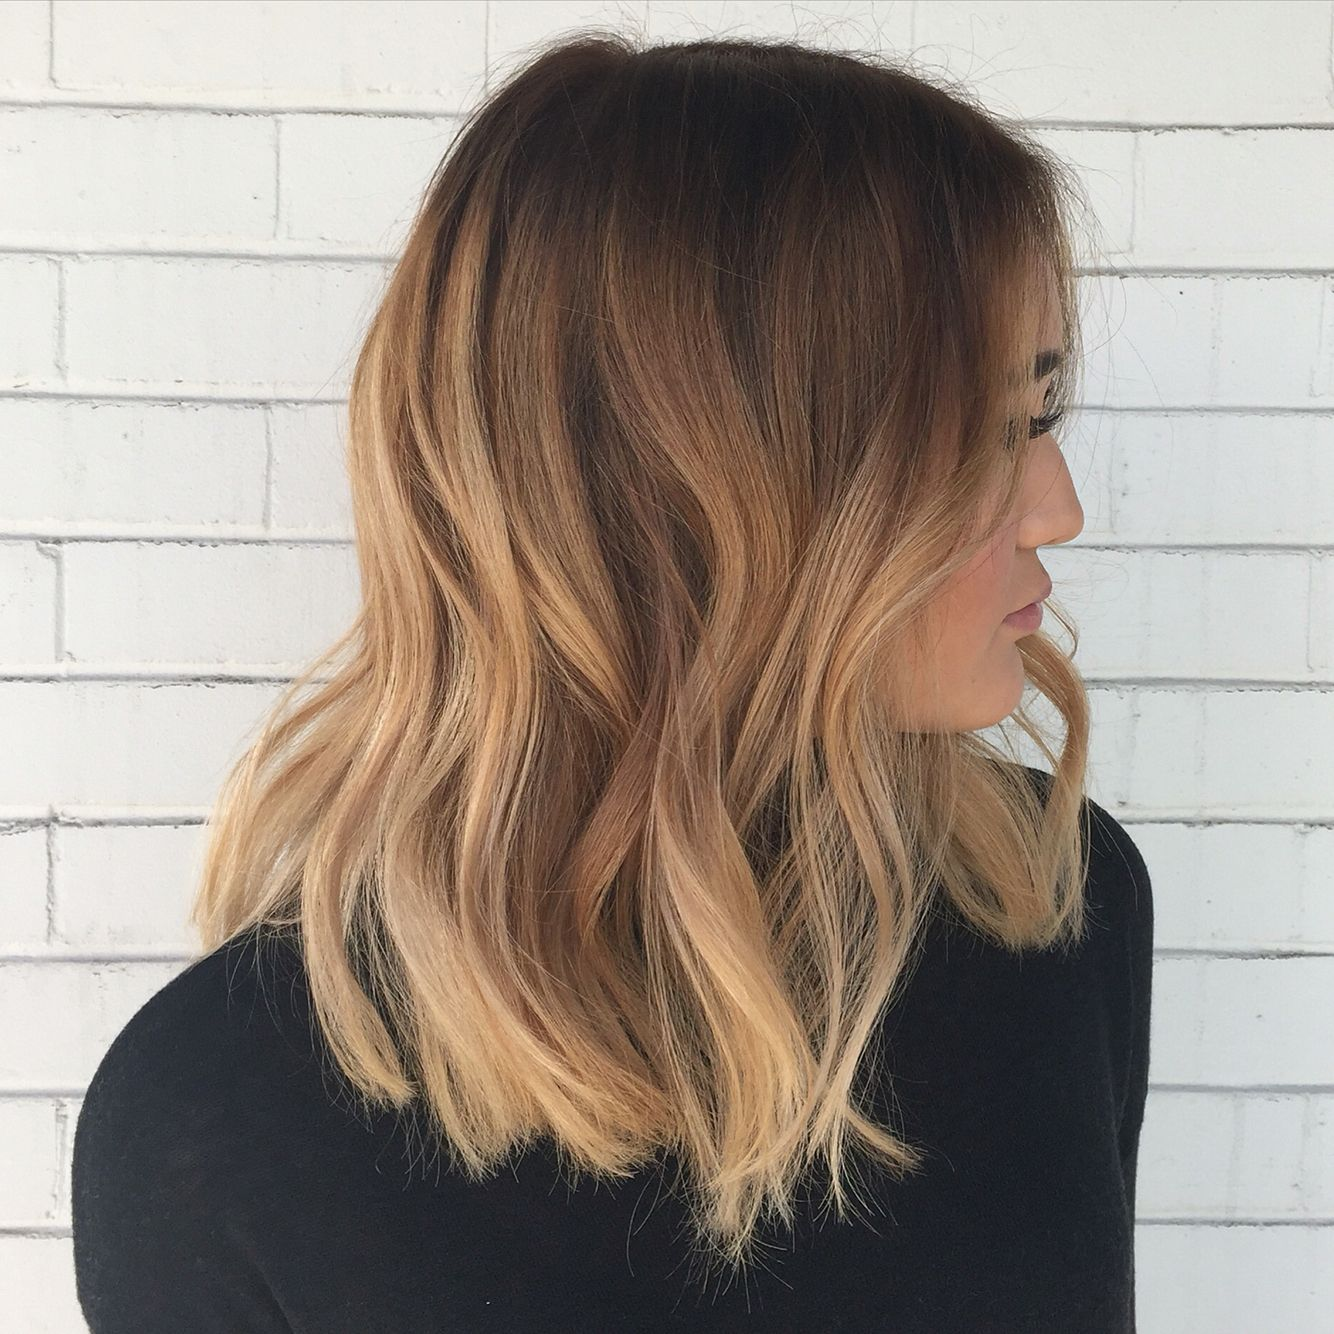 Full Hair Painting/ Balayage and a blunt long bob for this